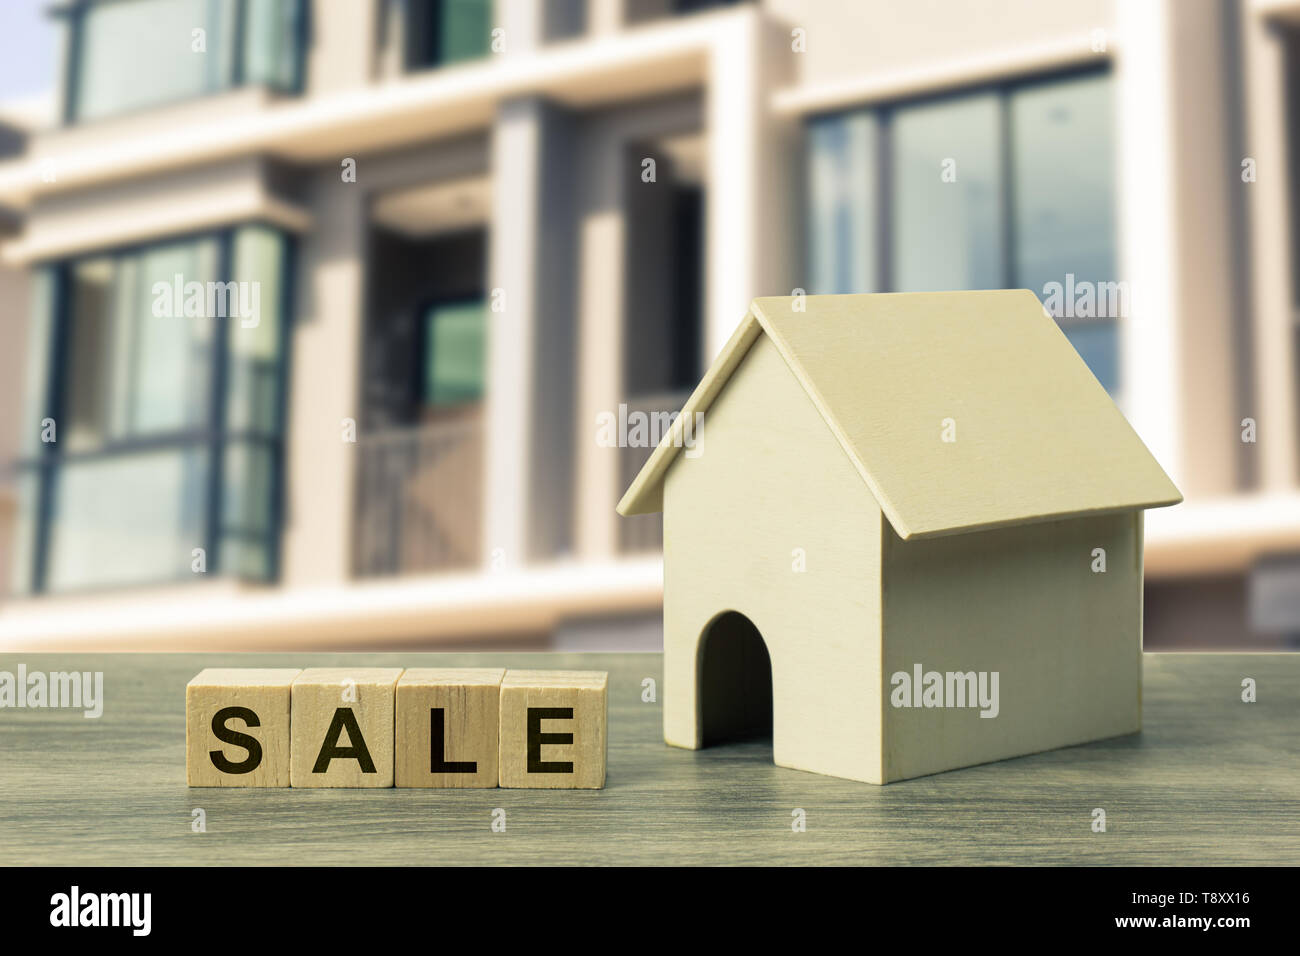 Home and real estate sale concept. A small residential model with sale wooden block on wood table on blurred real estate as background. Depicts house  - Stock Image